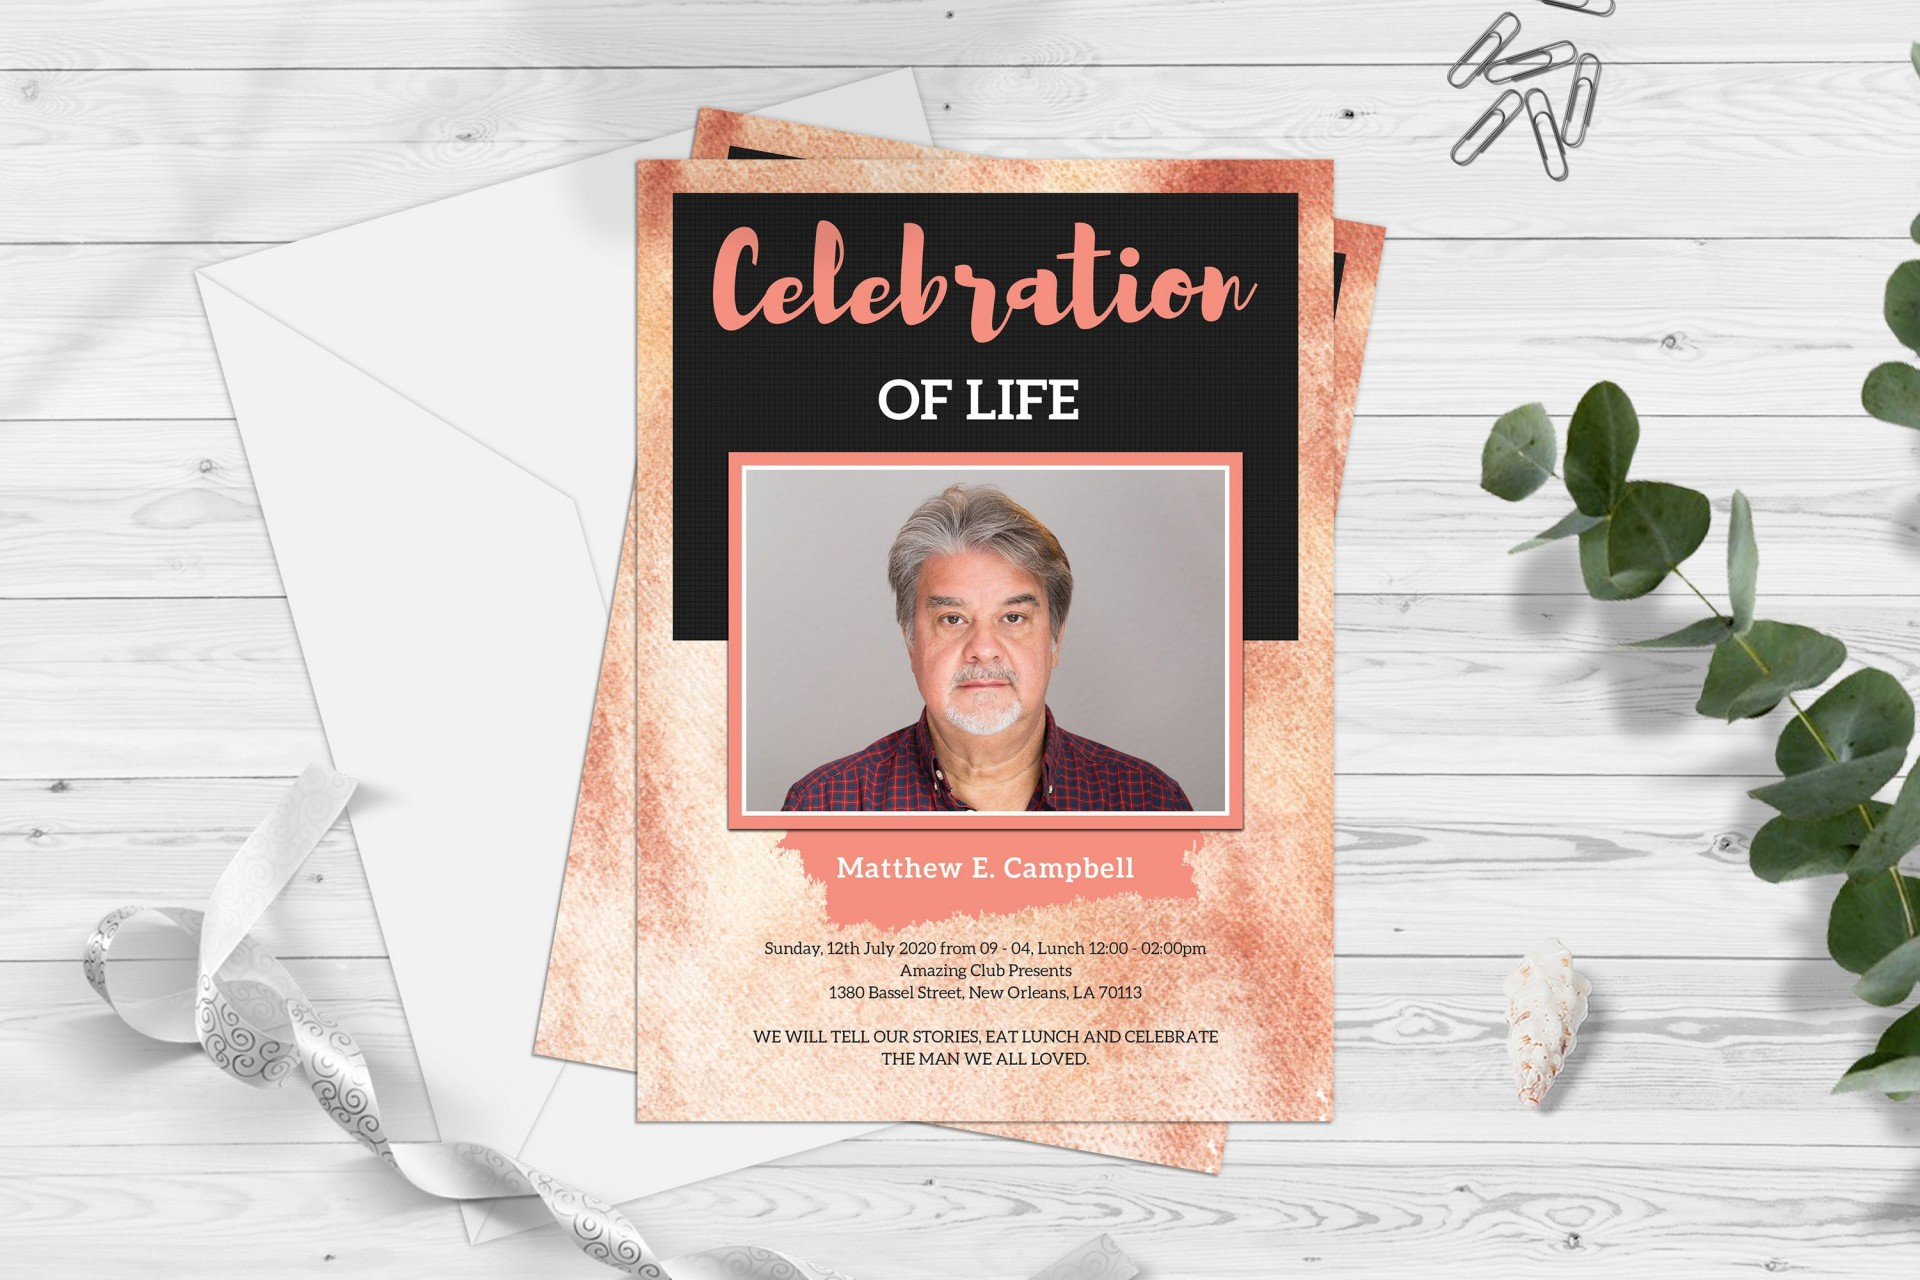 004 Staggering Celebration Of Life Template Image  Powerpoint Program Download Announcement Free1920